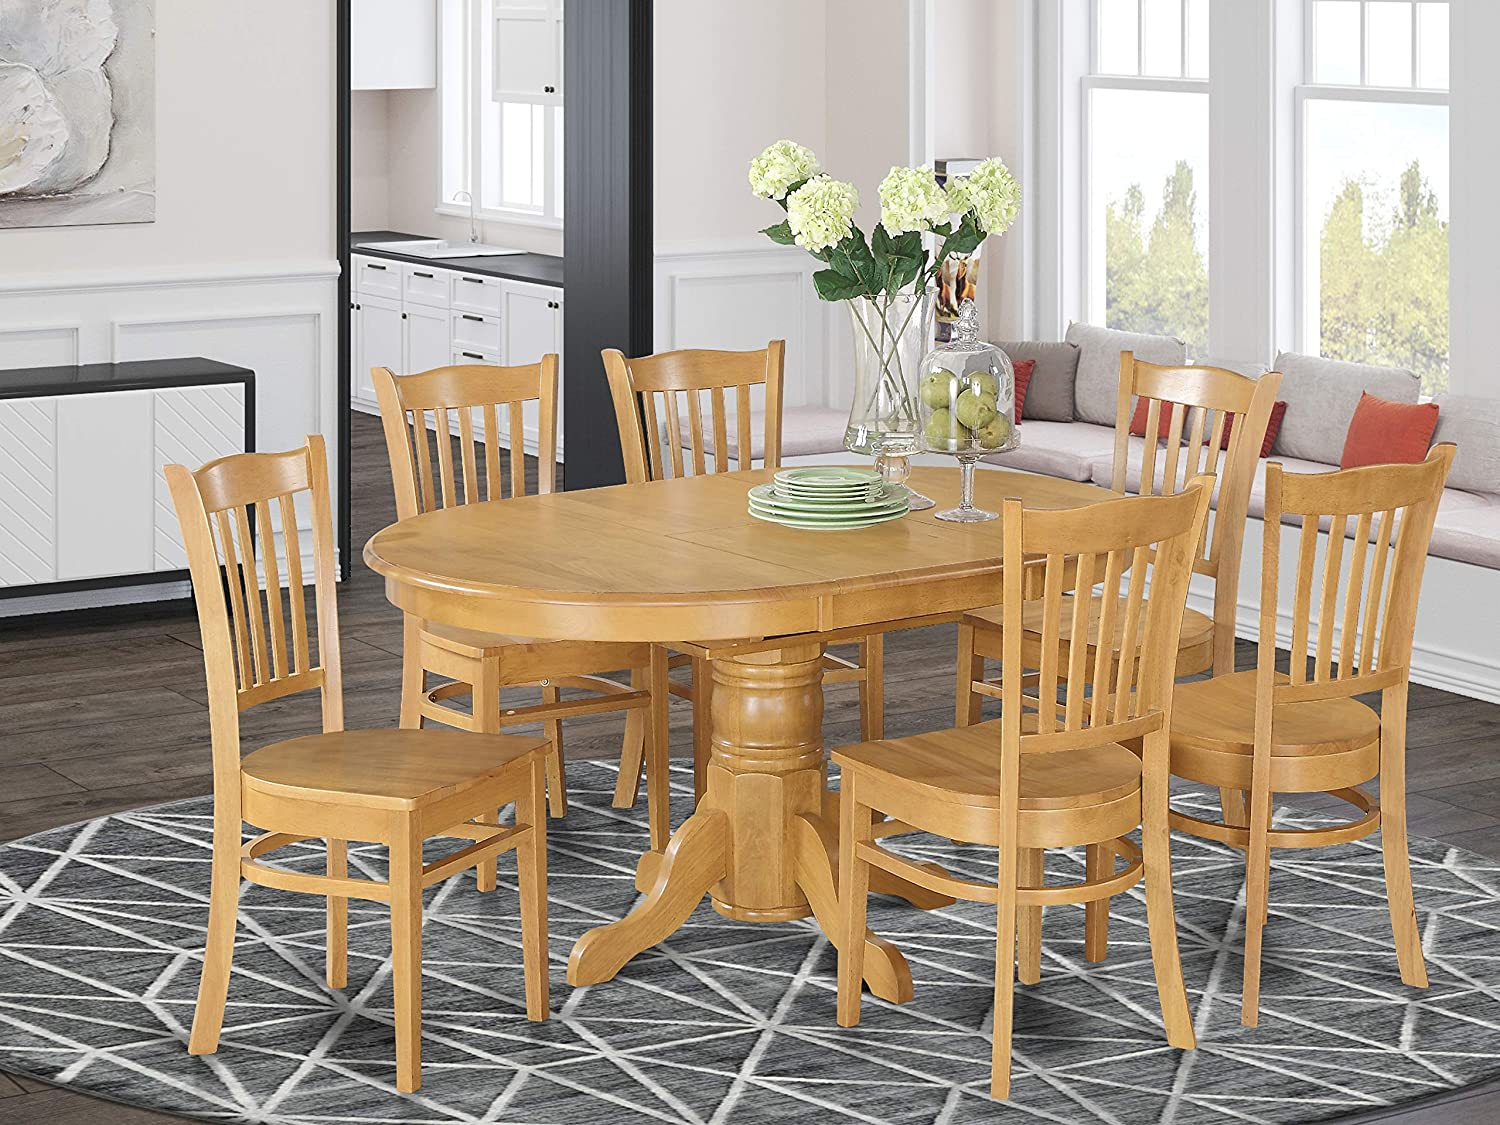 East West Furniture Dinette set 12 Fantastic wood dining chairs - A Stunning  dinner table- Oak Color Wooden Seat Oak Butterfly Leaf round dining table